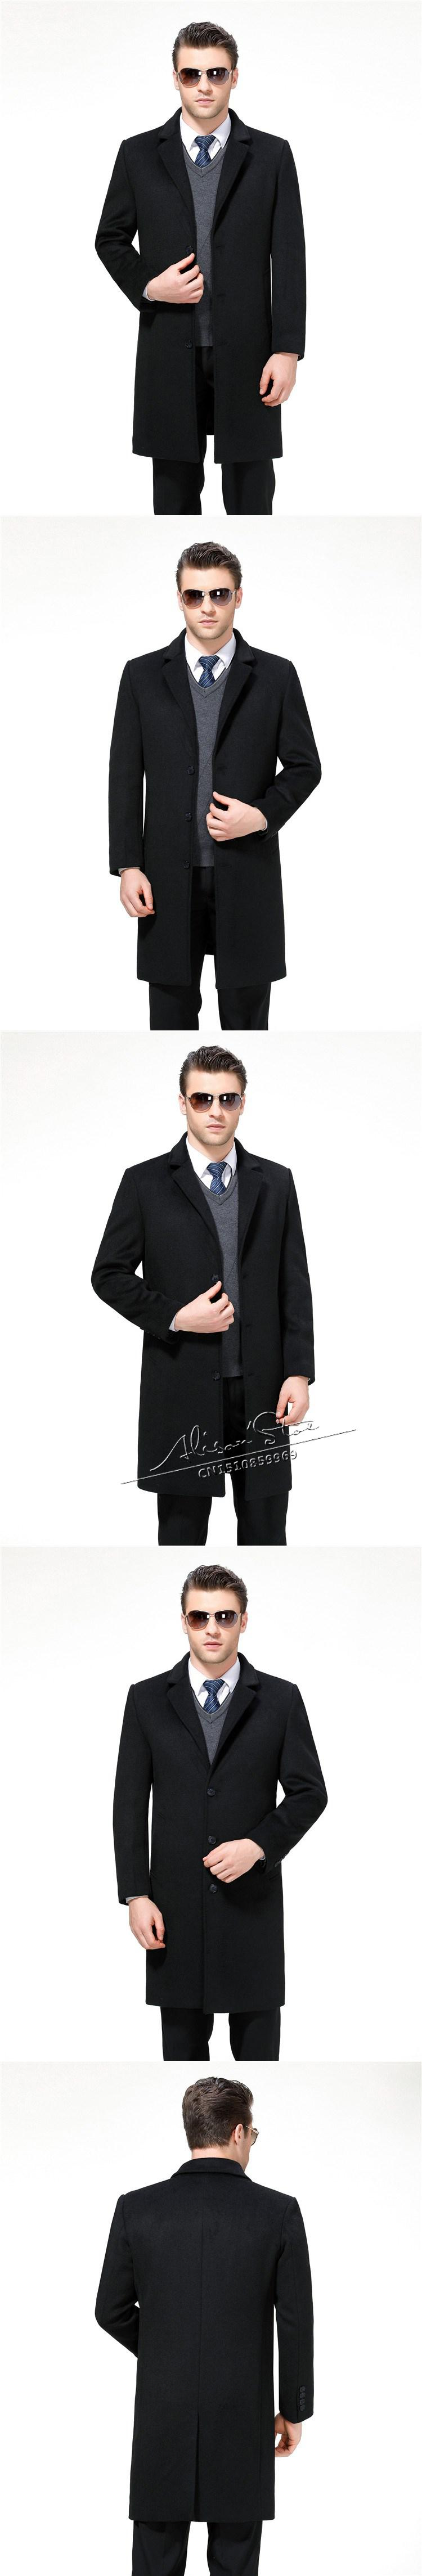 cd8dd9f1e768 2018 Mu Yuan Yang X Long Jackets &Amp; Coats Single Breasted Casual Mens  Wool Blend Jackets Full Winter For Male Wool Overcoat 3XL 4XL From Suitfit,  ...